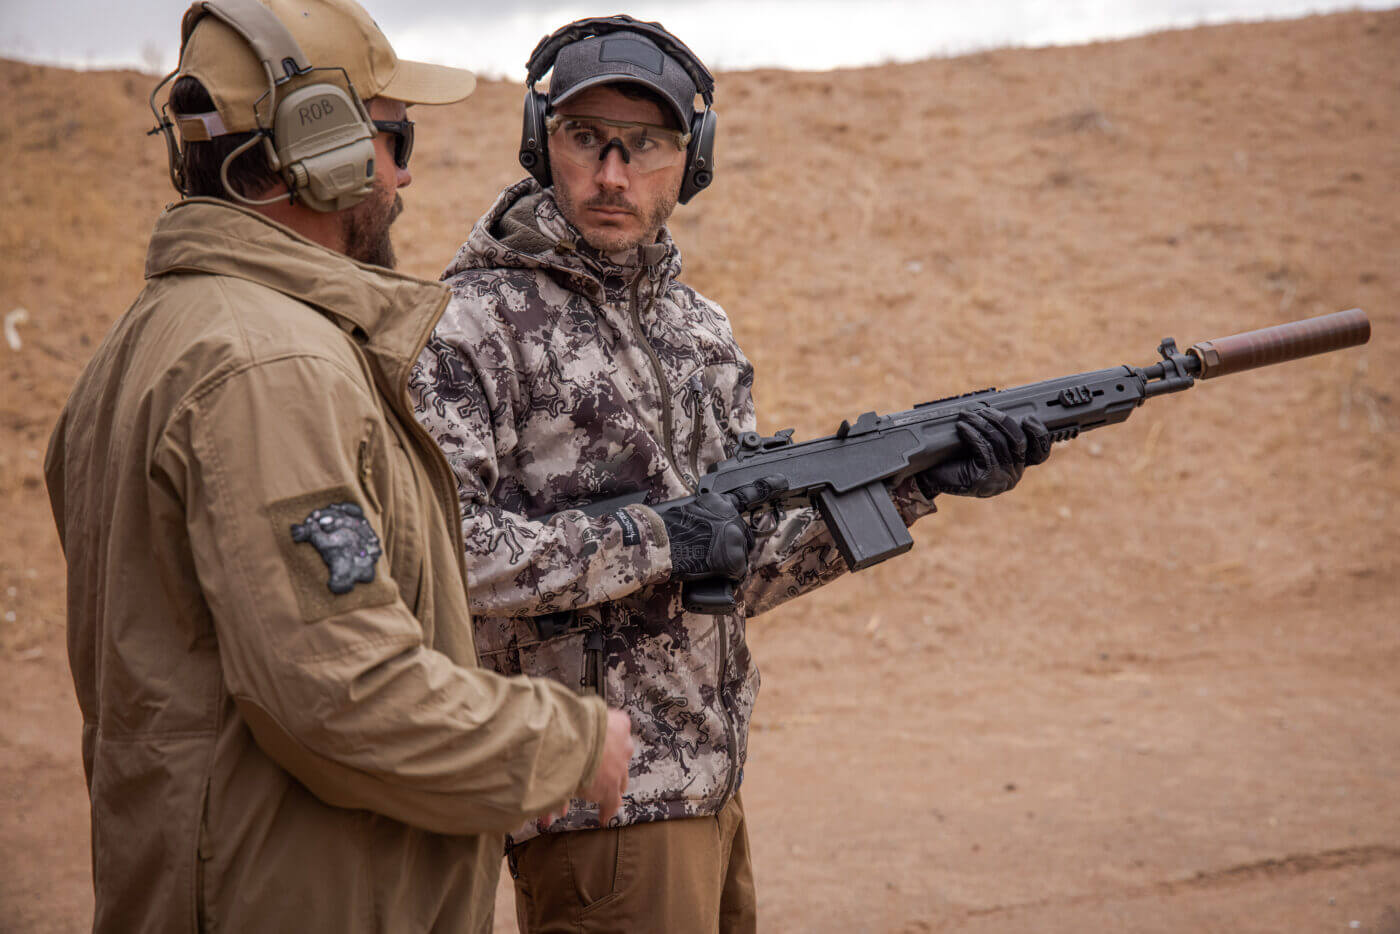 Testing M1A rifle with suppressor on the range